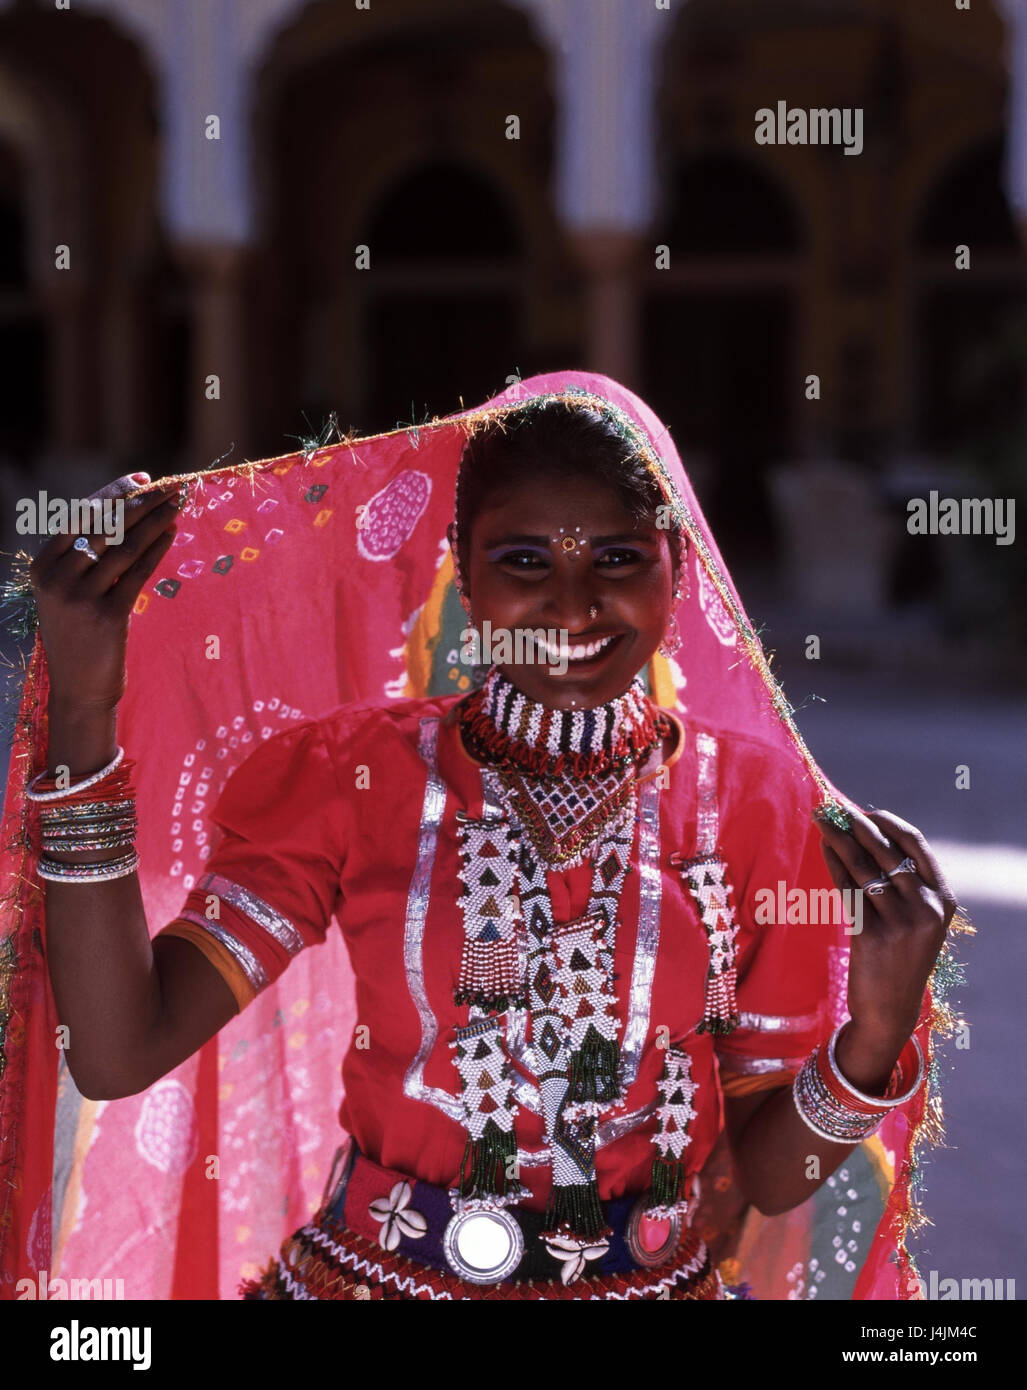 6a24ed6b2c India, Rajasthan, Jaipur, Indian, national costume, half portrait woman,  young, clothes, traditionally, national costume, jewellery, outside